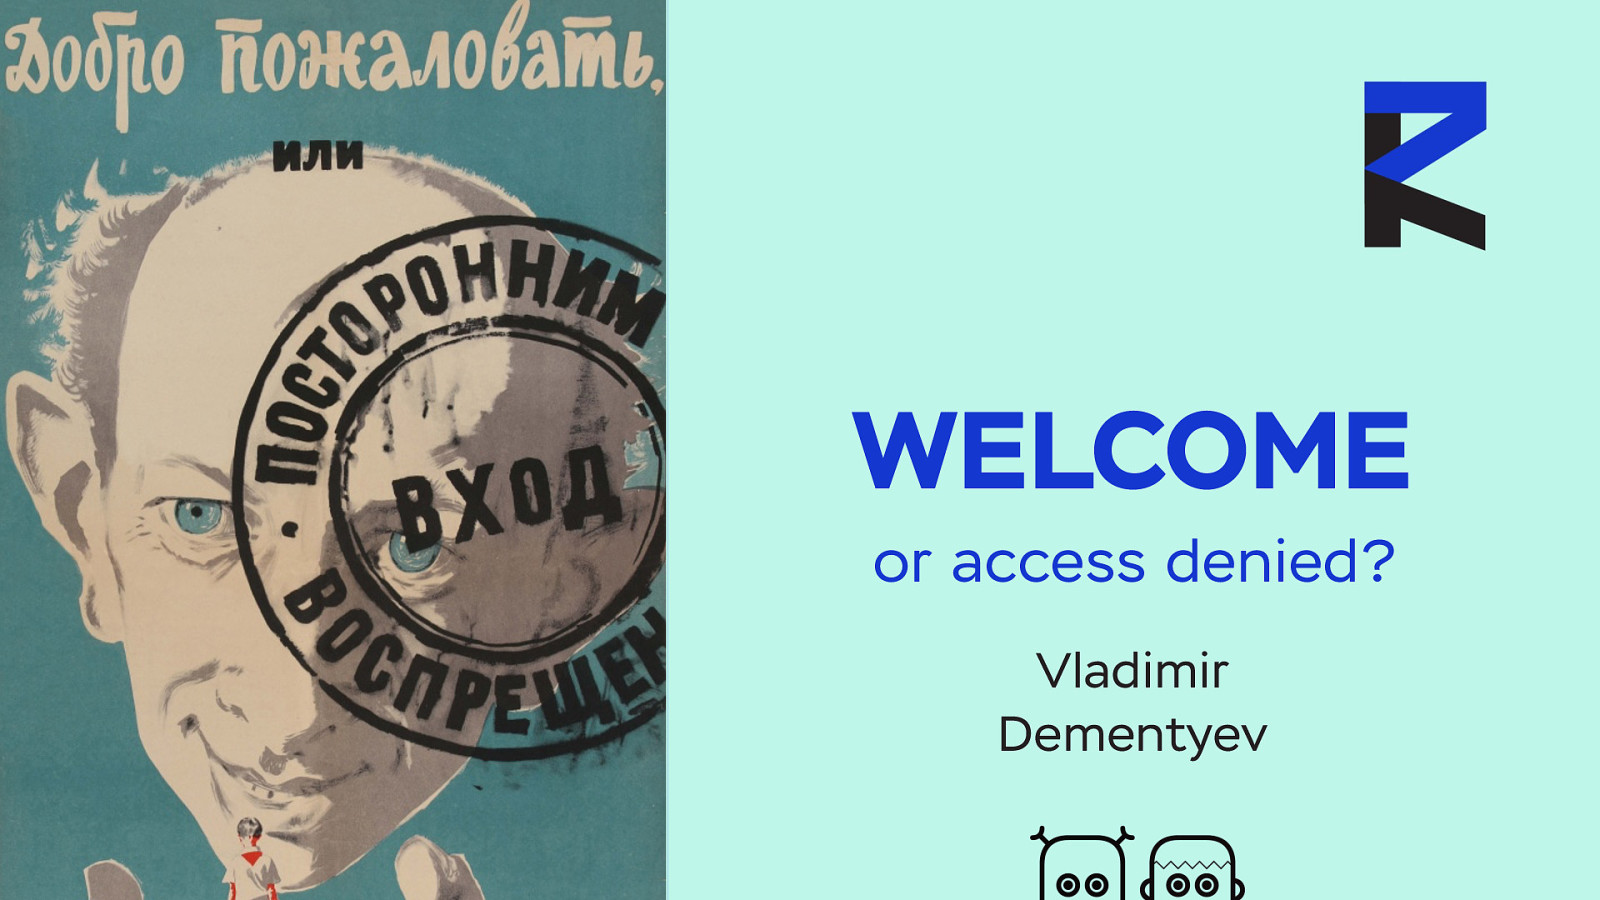 Welcome, or access denied